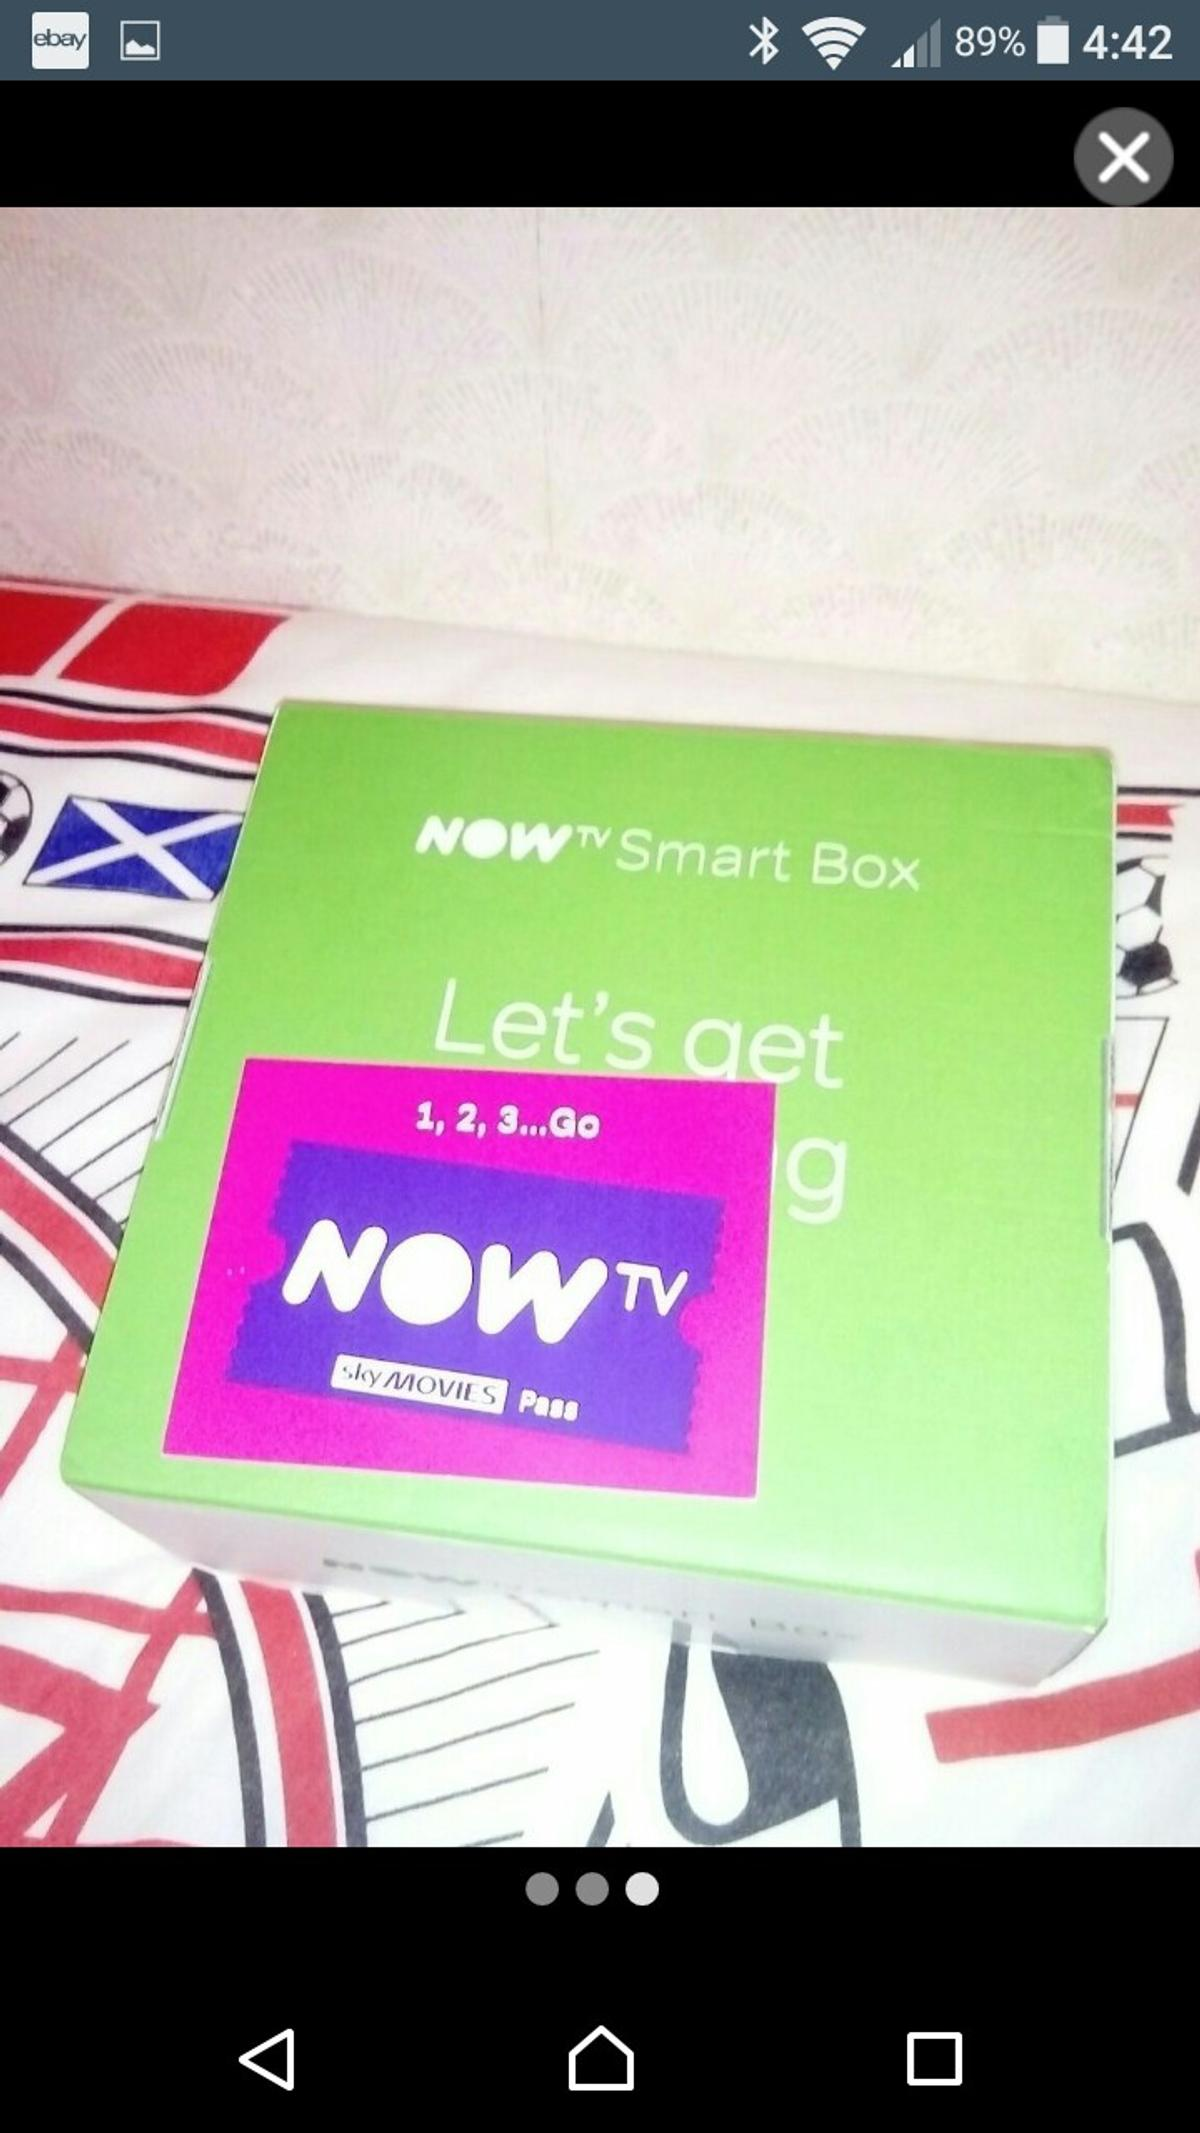 Now tv smart box brand new Freeview movies